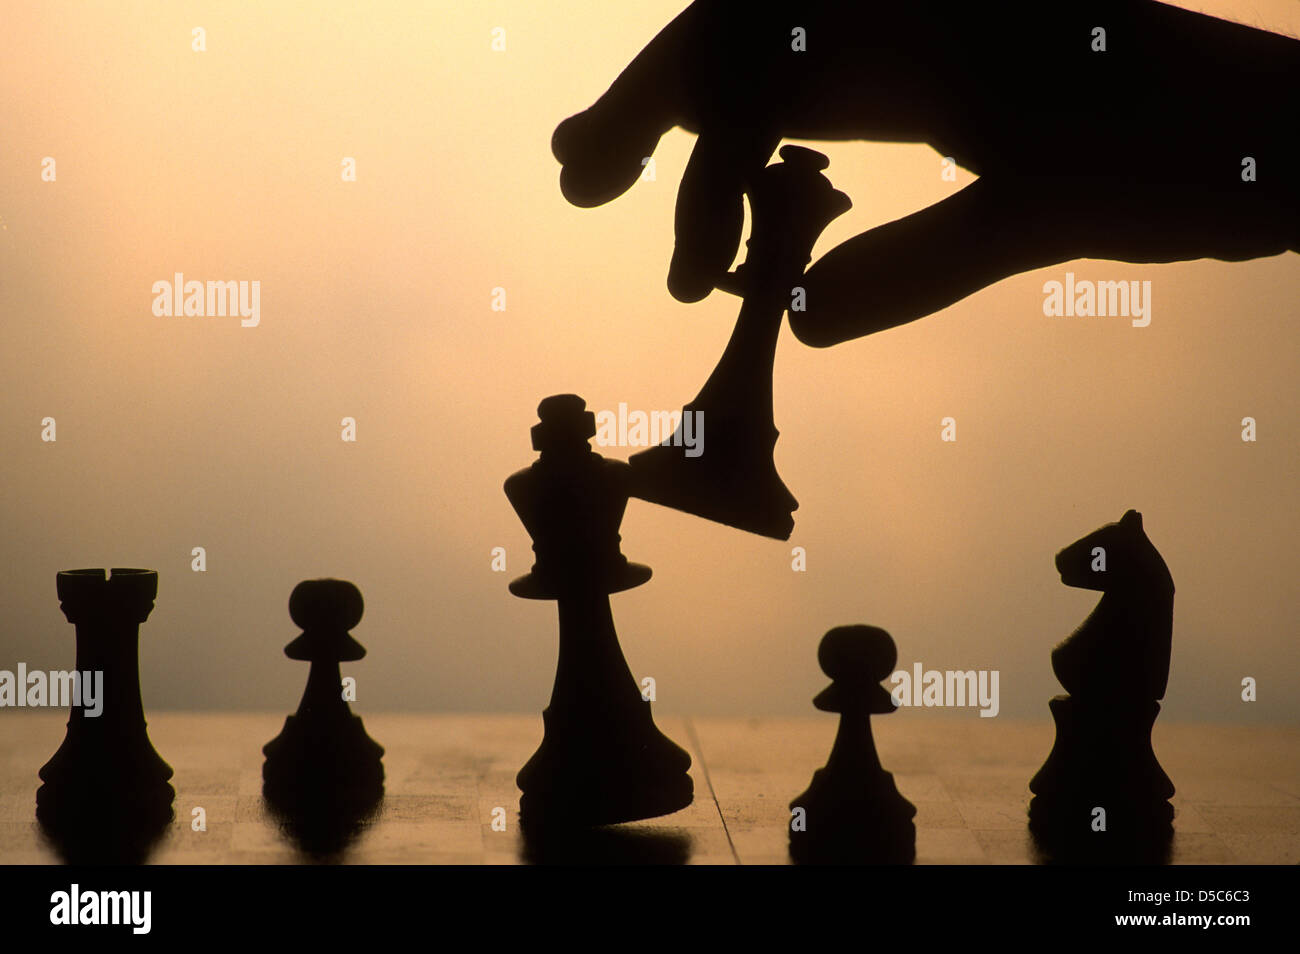 Board game - Chess game - Stock Image